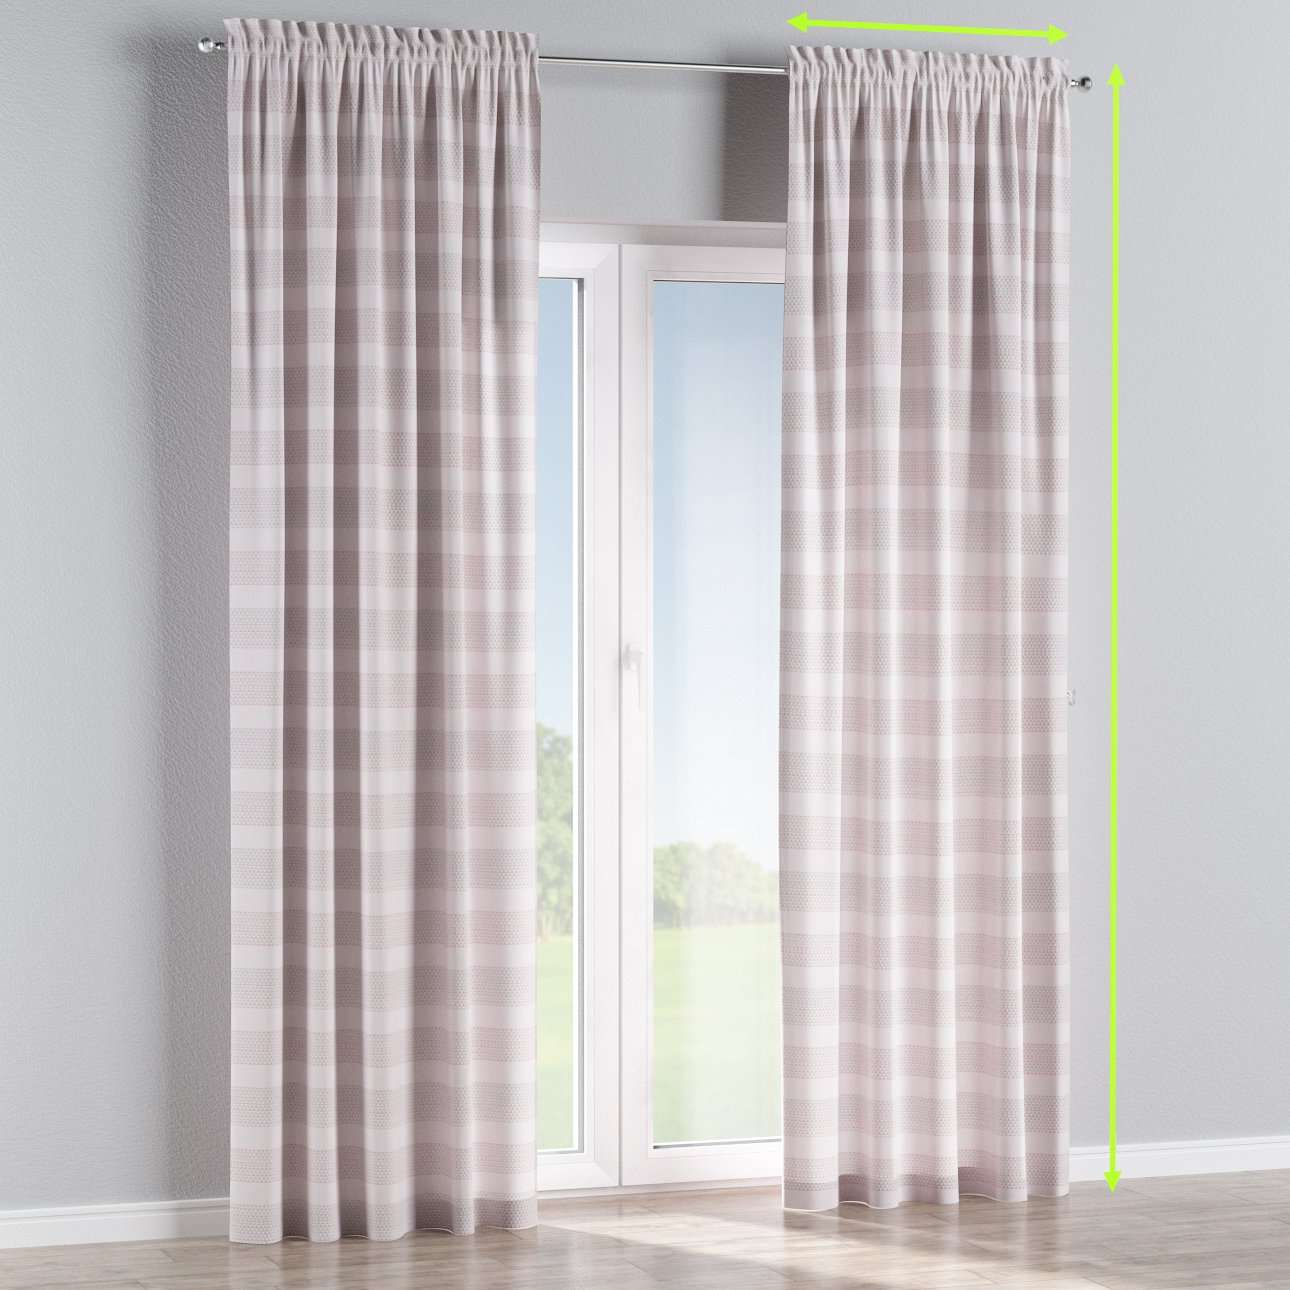 Slot and frill lined curtains in collection Rustica, fabric: 140-29